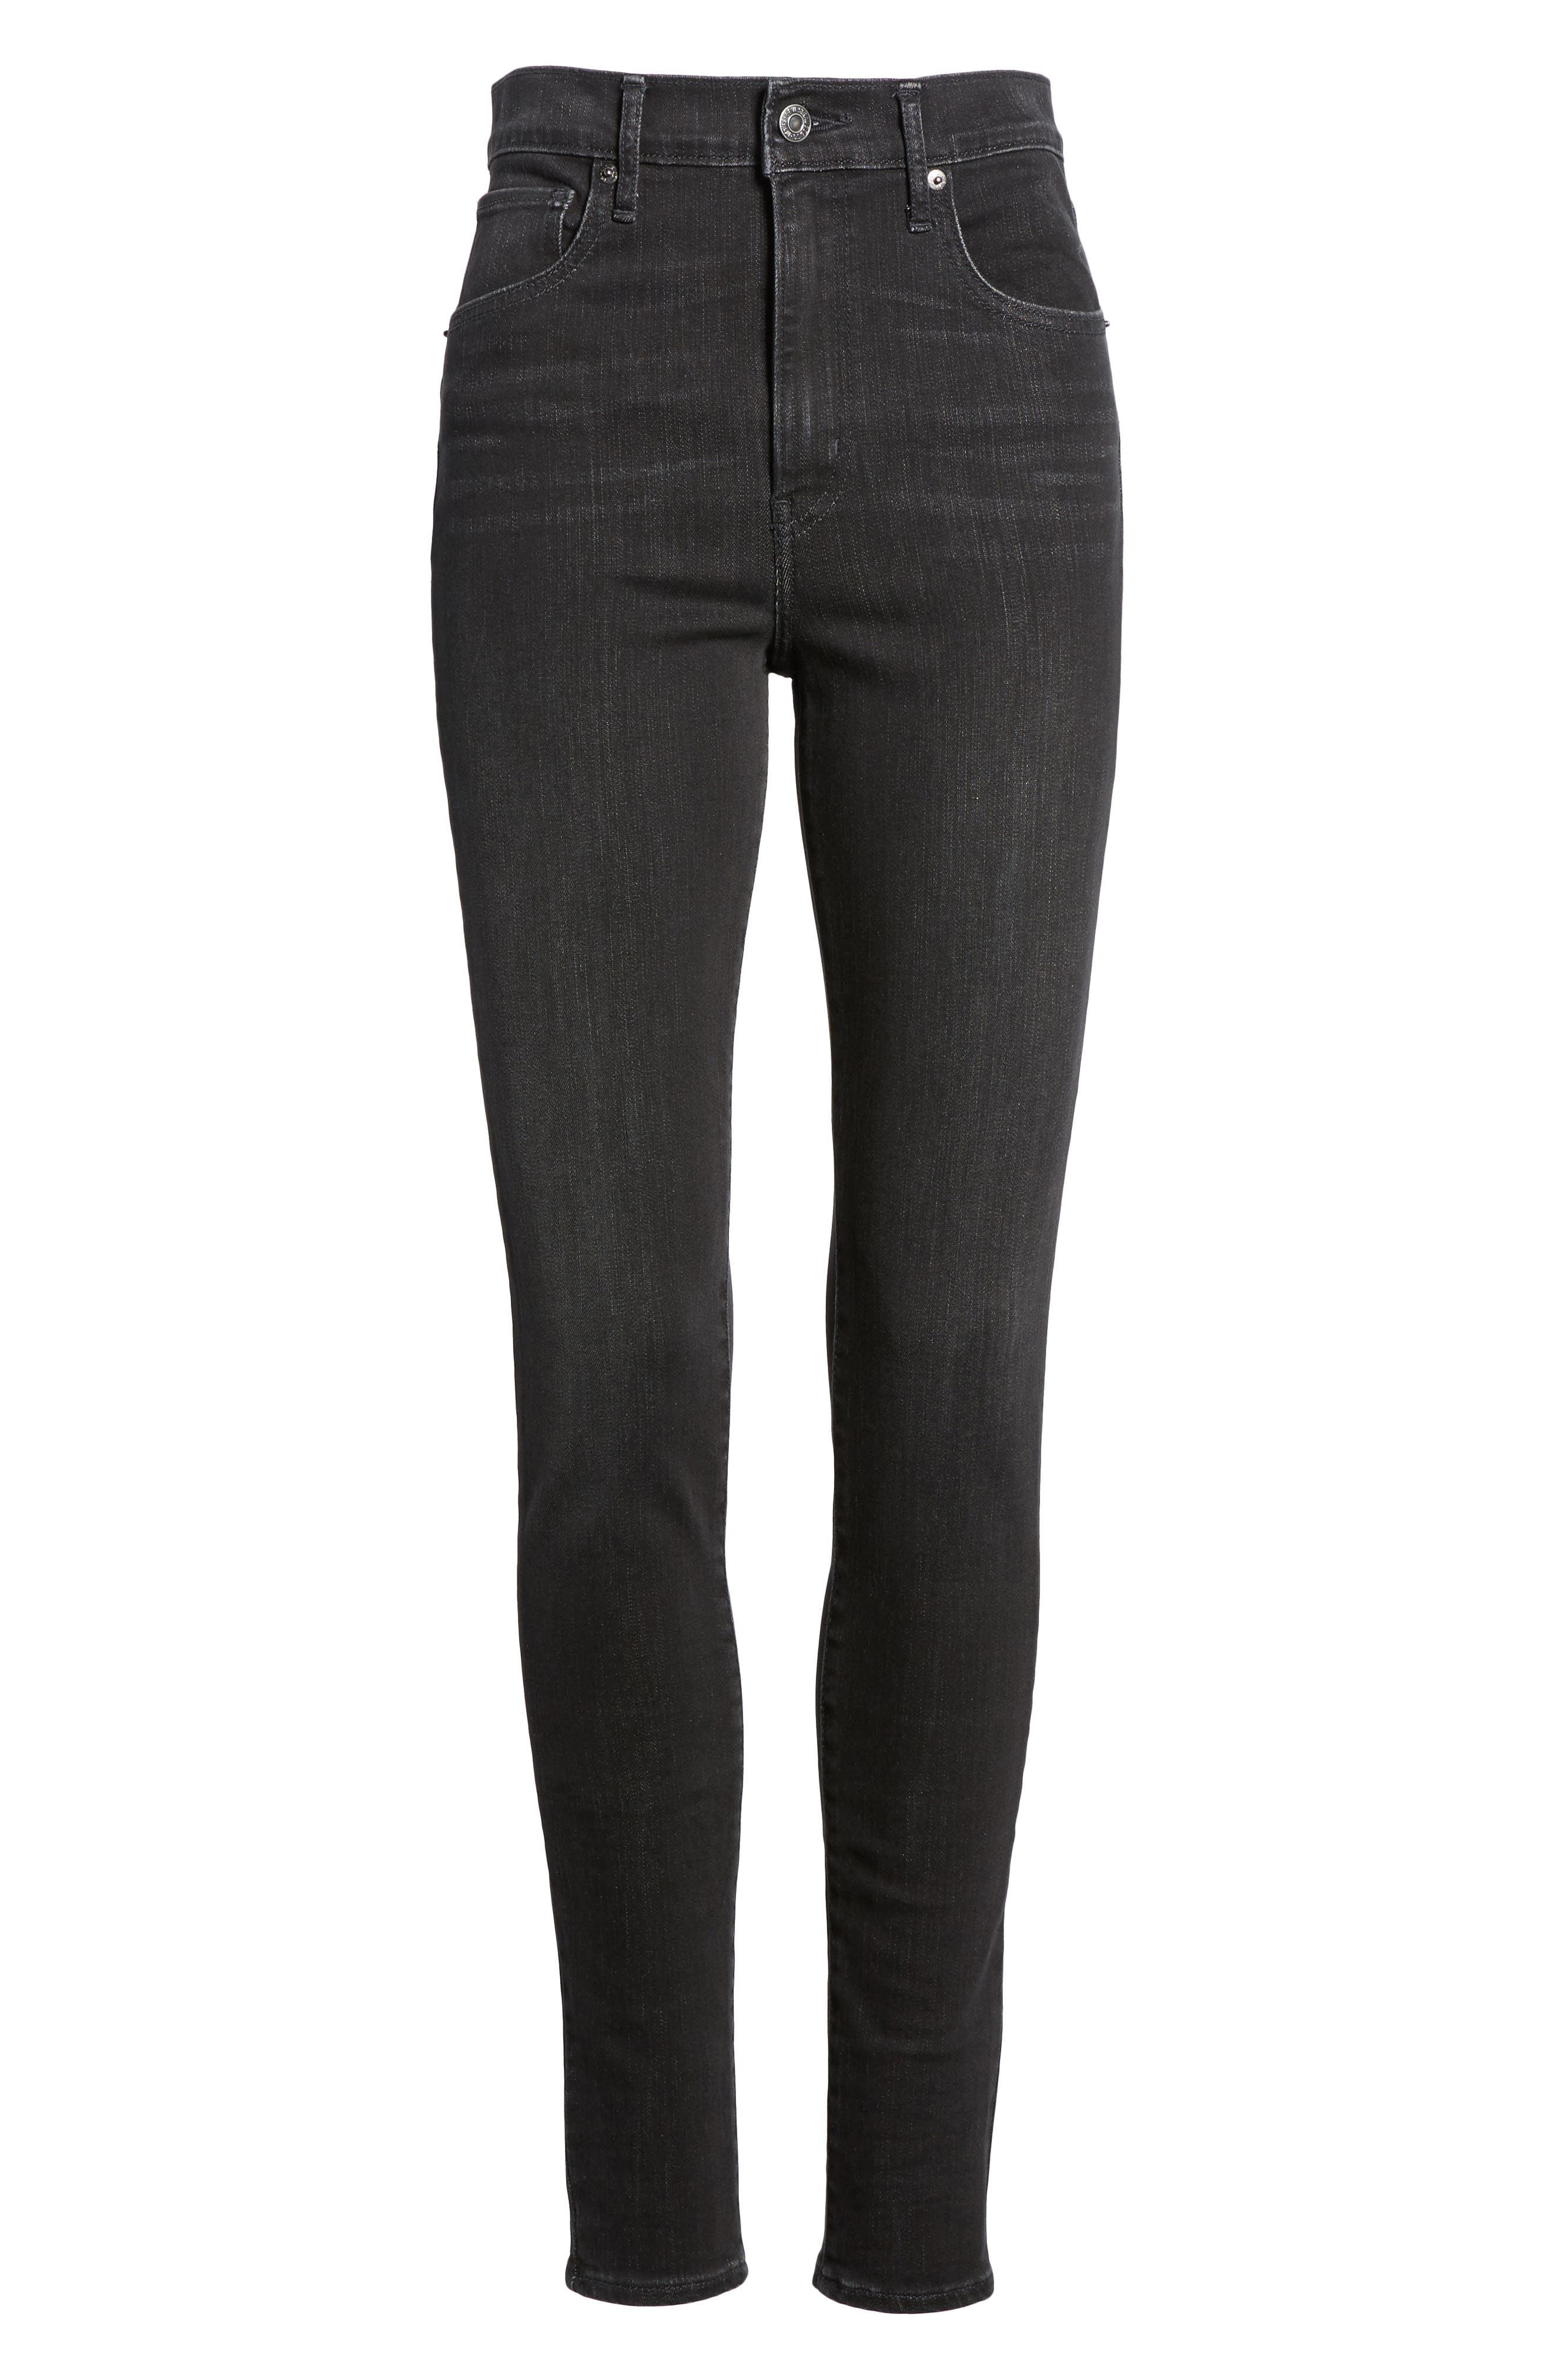 Mile High High Rise Skinny Jeans,                             Alternate thumbnail 6, color,                             001